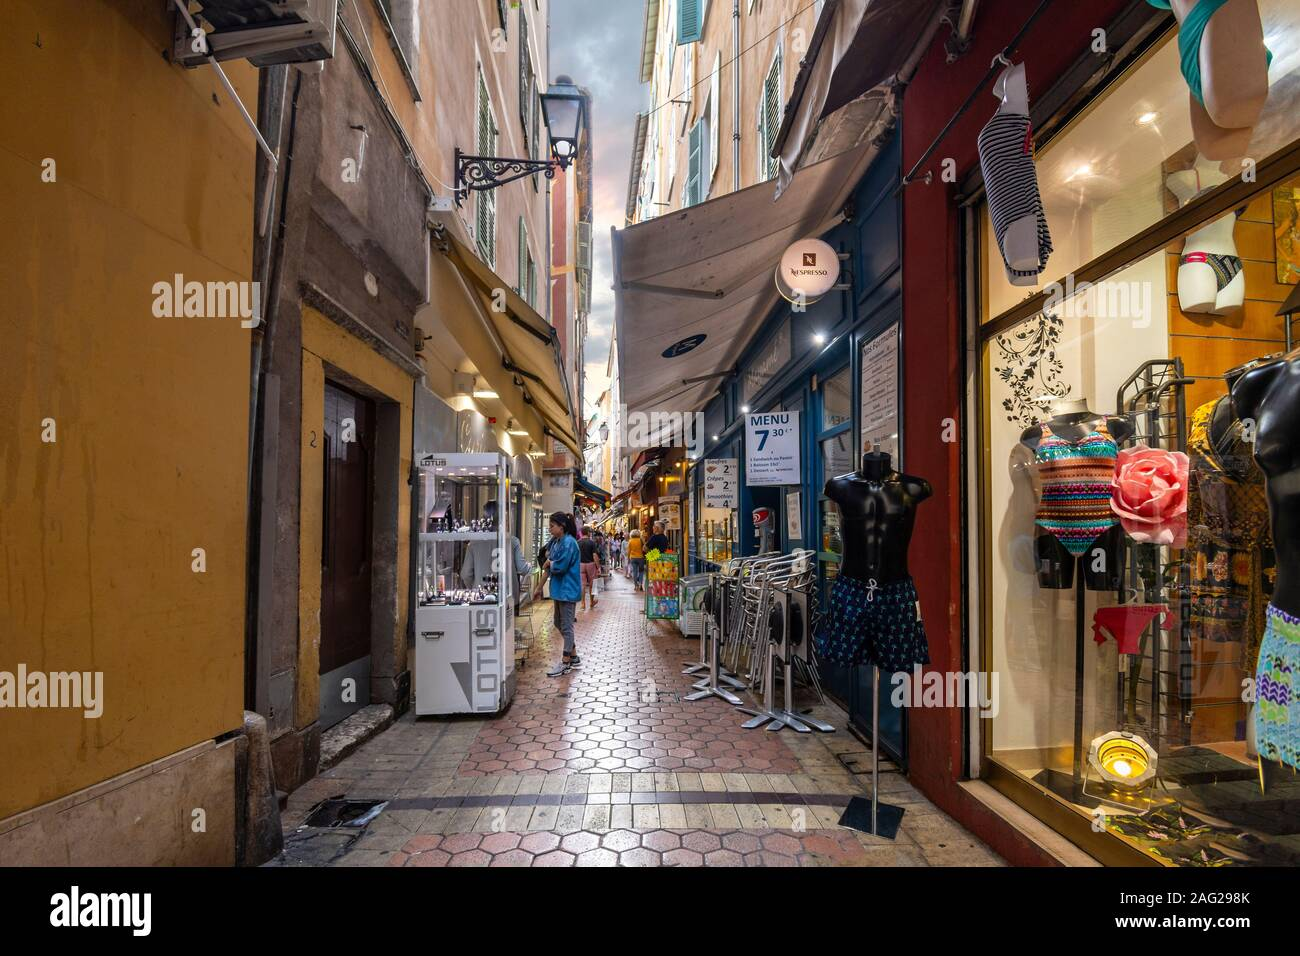 Tourists shop a very narrow alley full of cafes and shops in the Old Town of Vieux Nice, France, on the French Riviera. Stock Photo